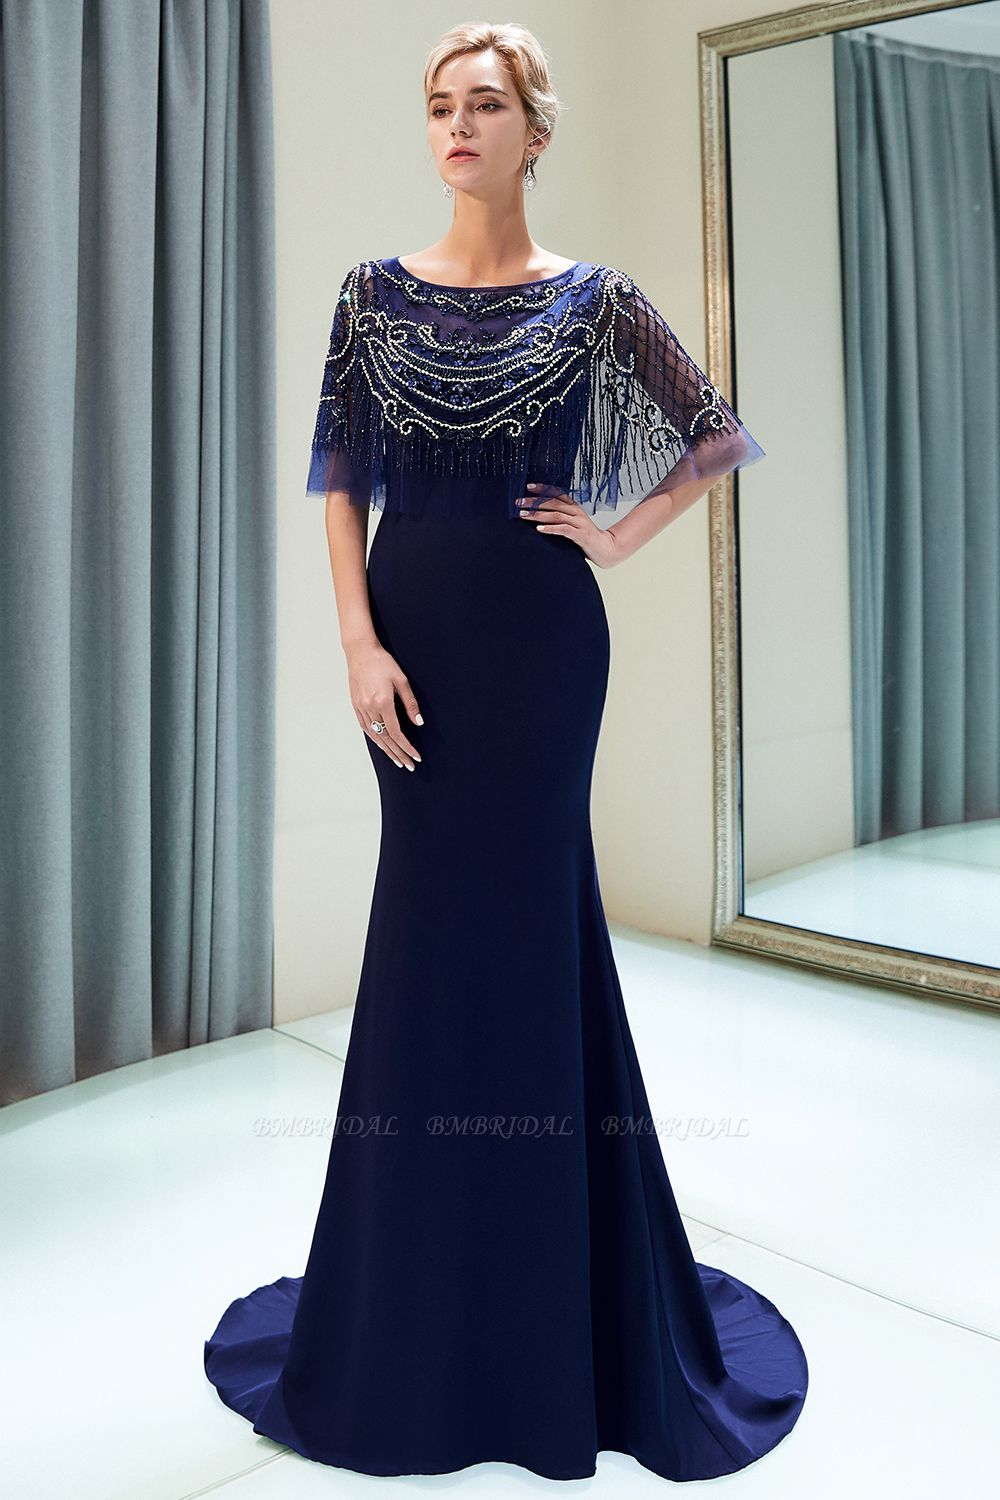 BMbridal Gorgeous Mermaid Jewel Long Prom Dresses Navy Beading Formal Dresses with Crystals